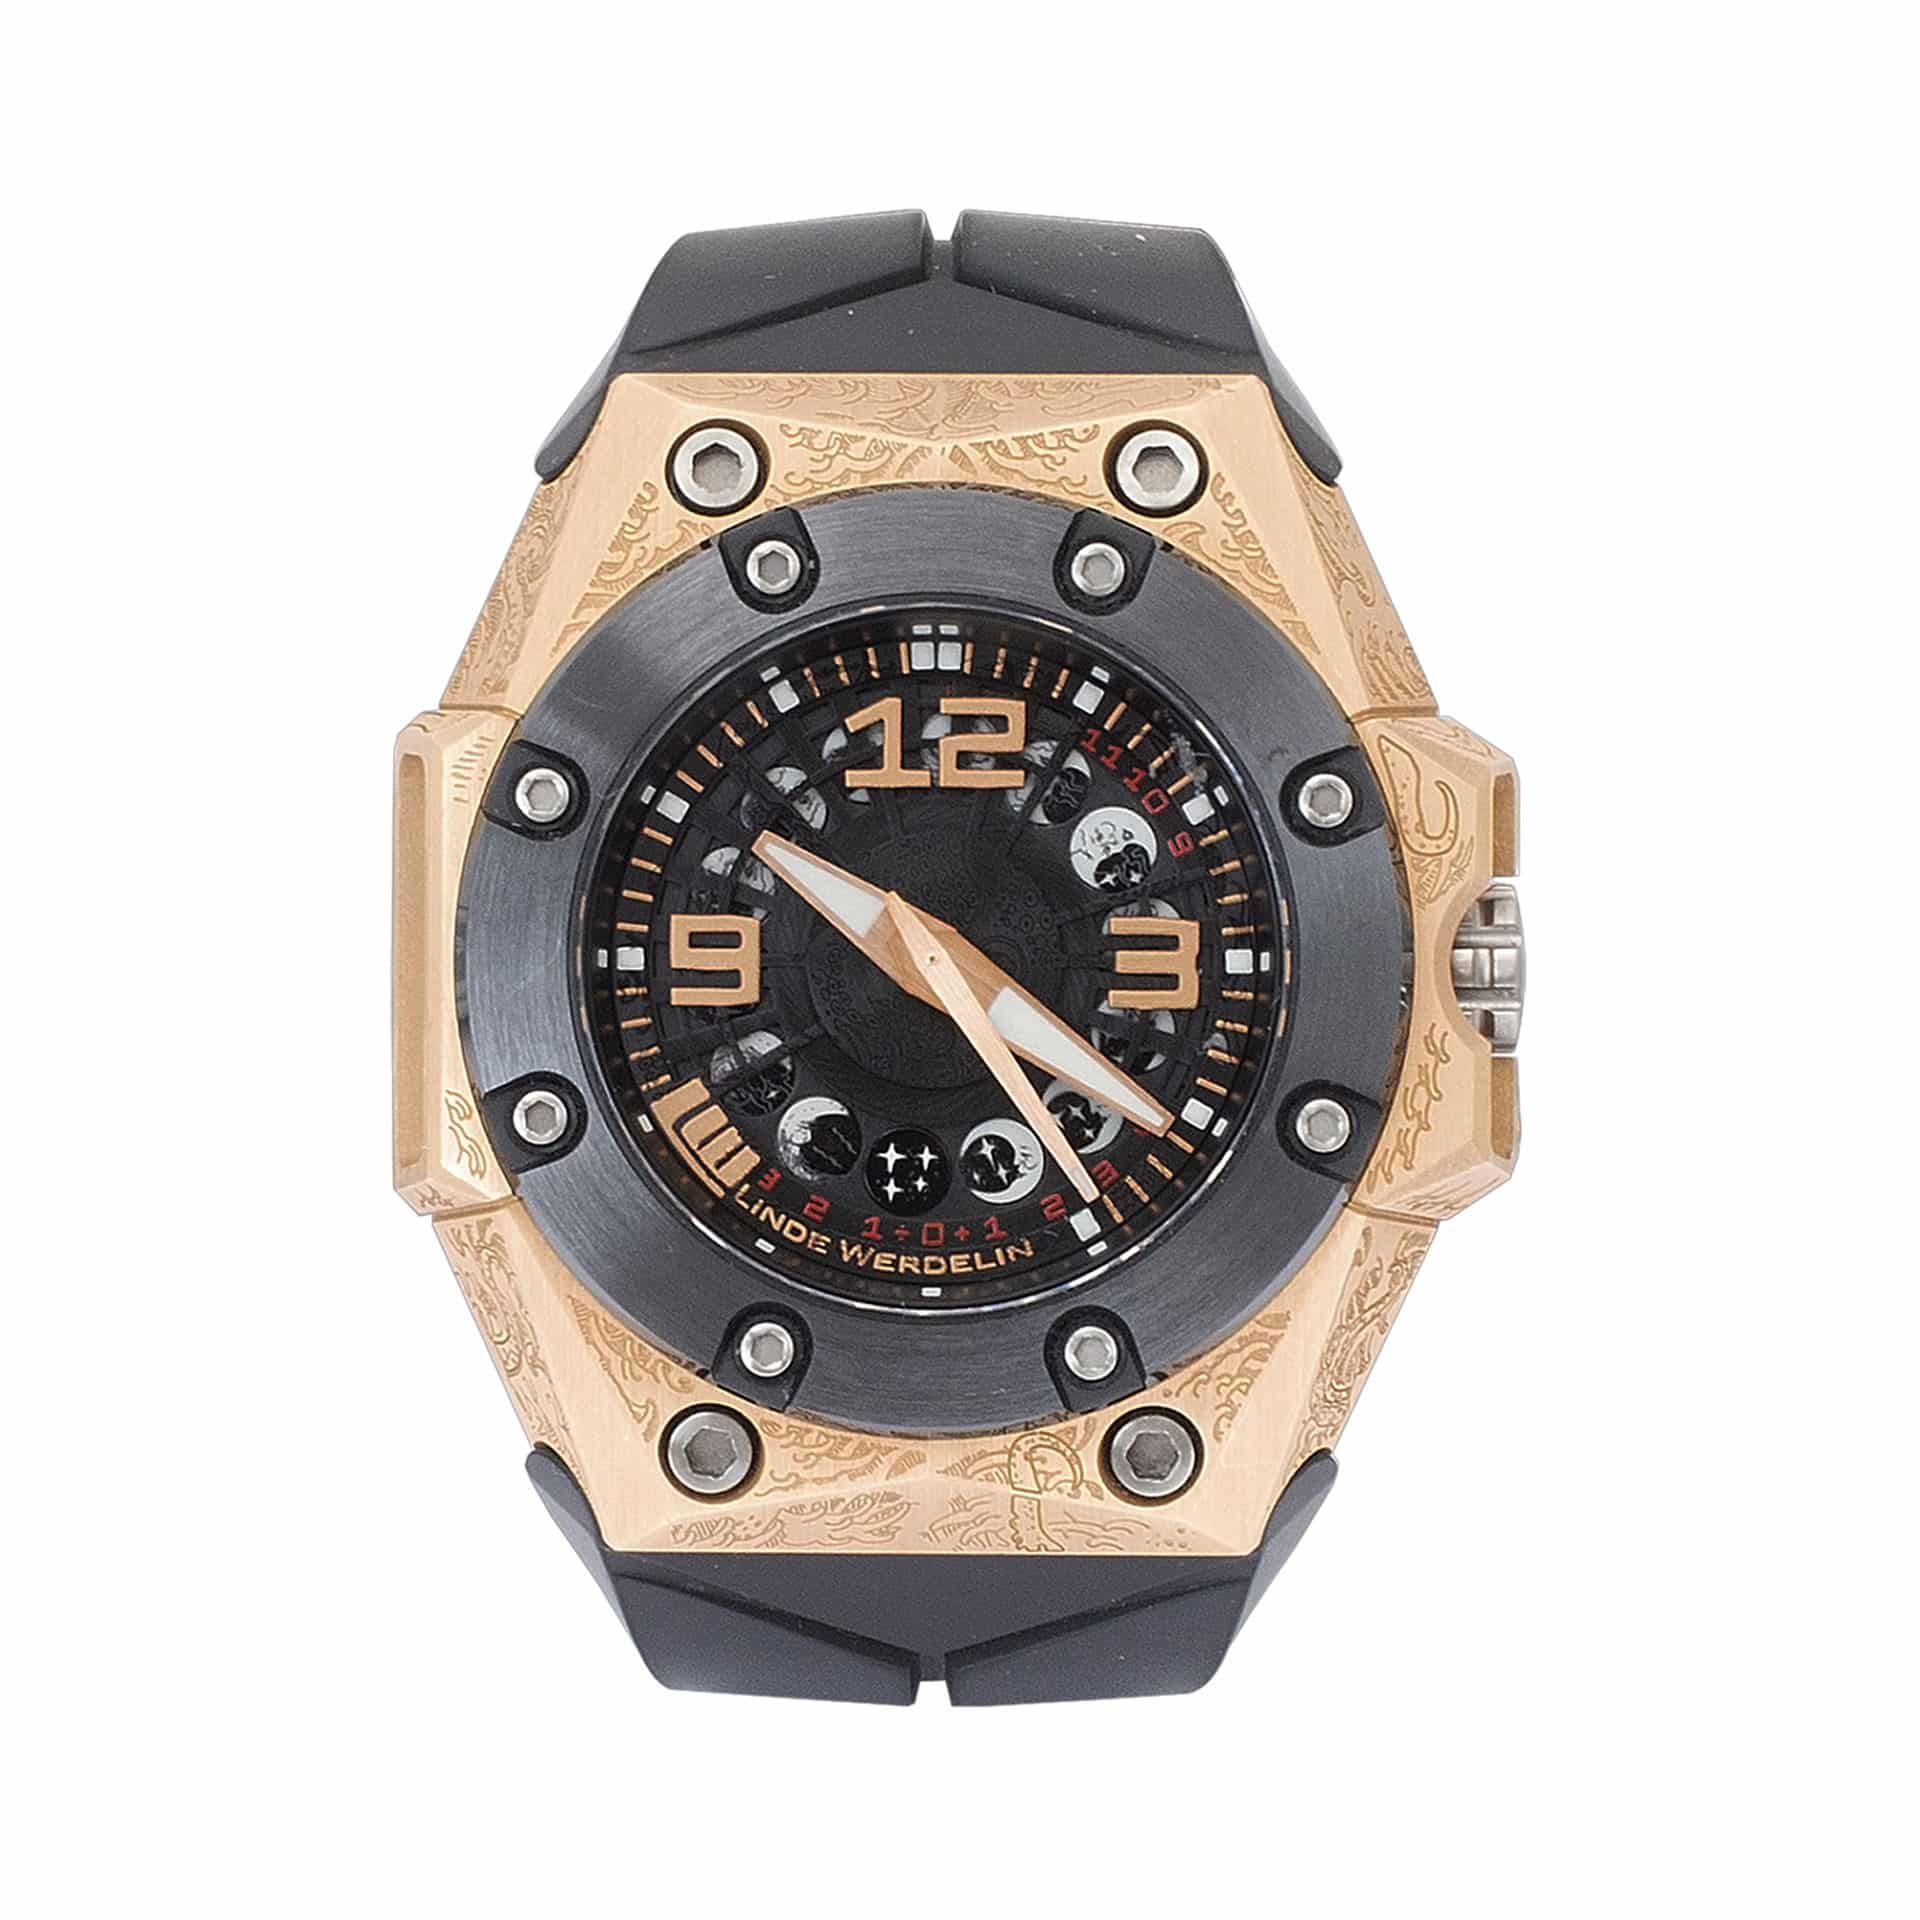 Lindewerdelin Oktopus Watch